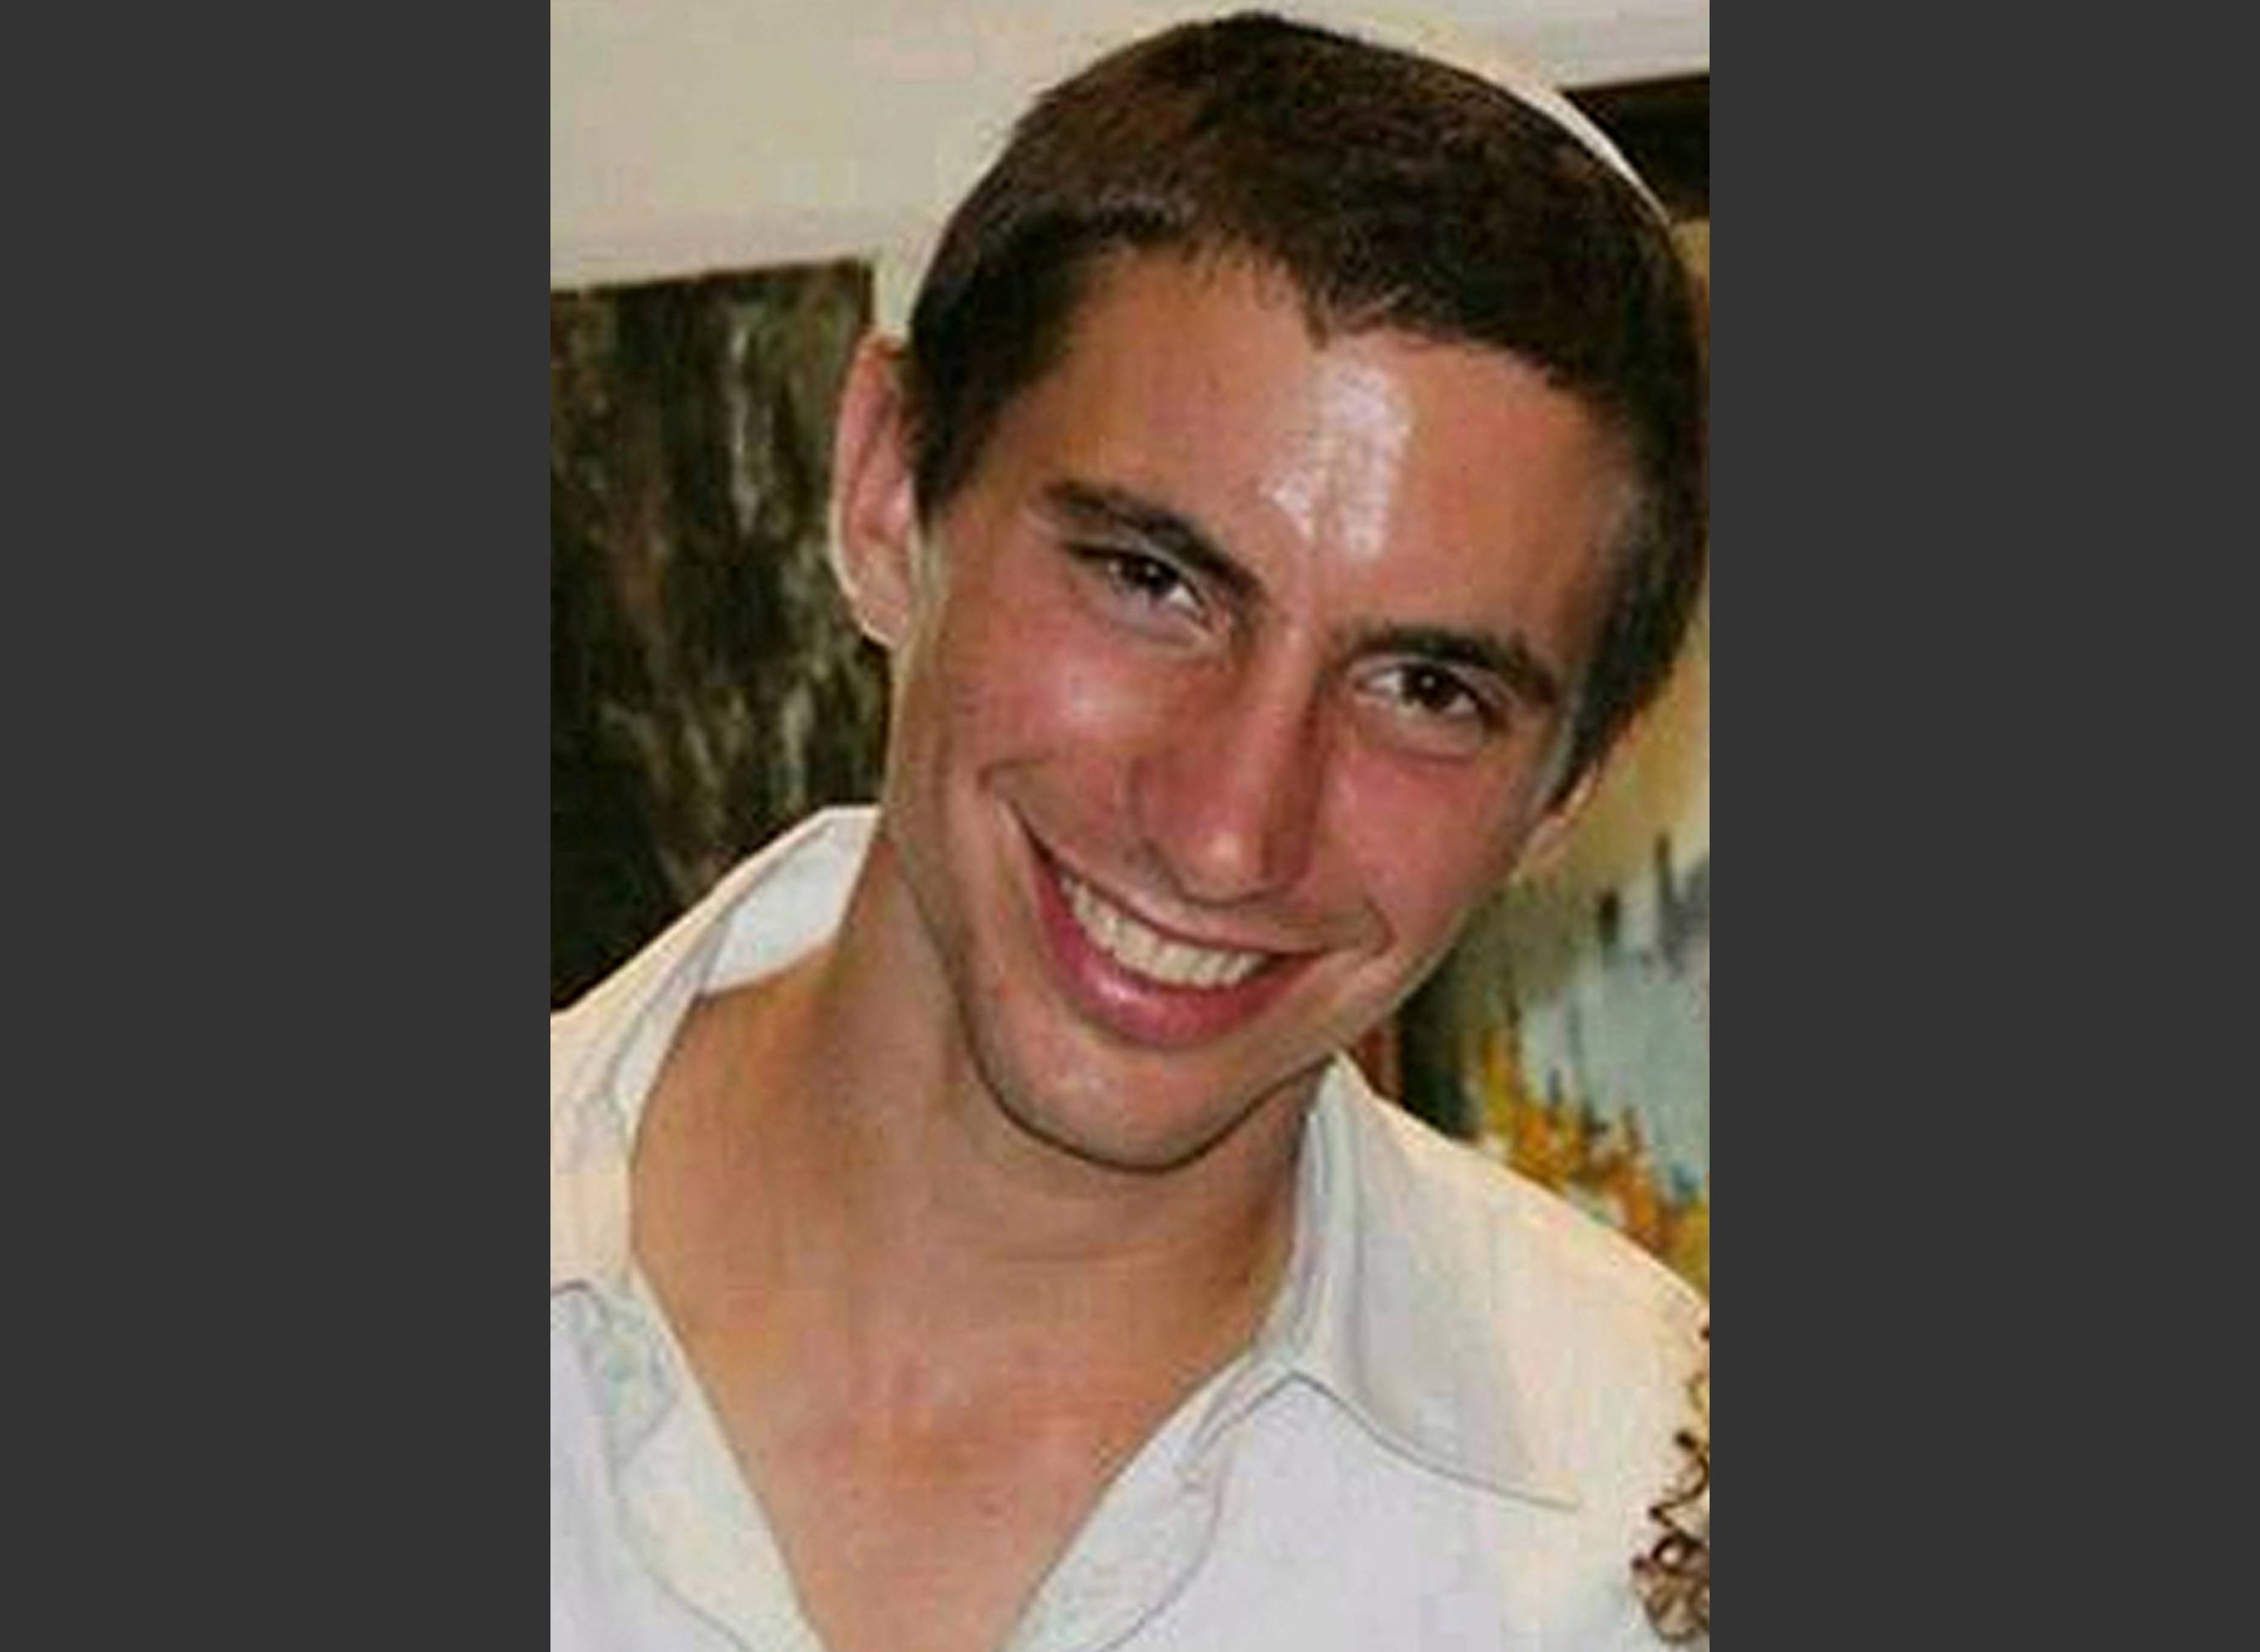 Israeli Army 2nd. Lt. Hadar Goldin, 23, from Kfar Saba, central Israel.